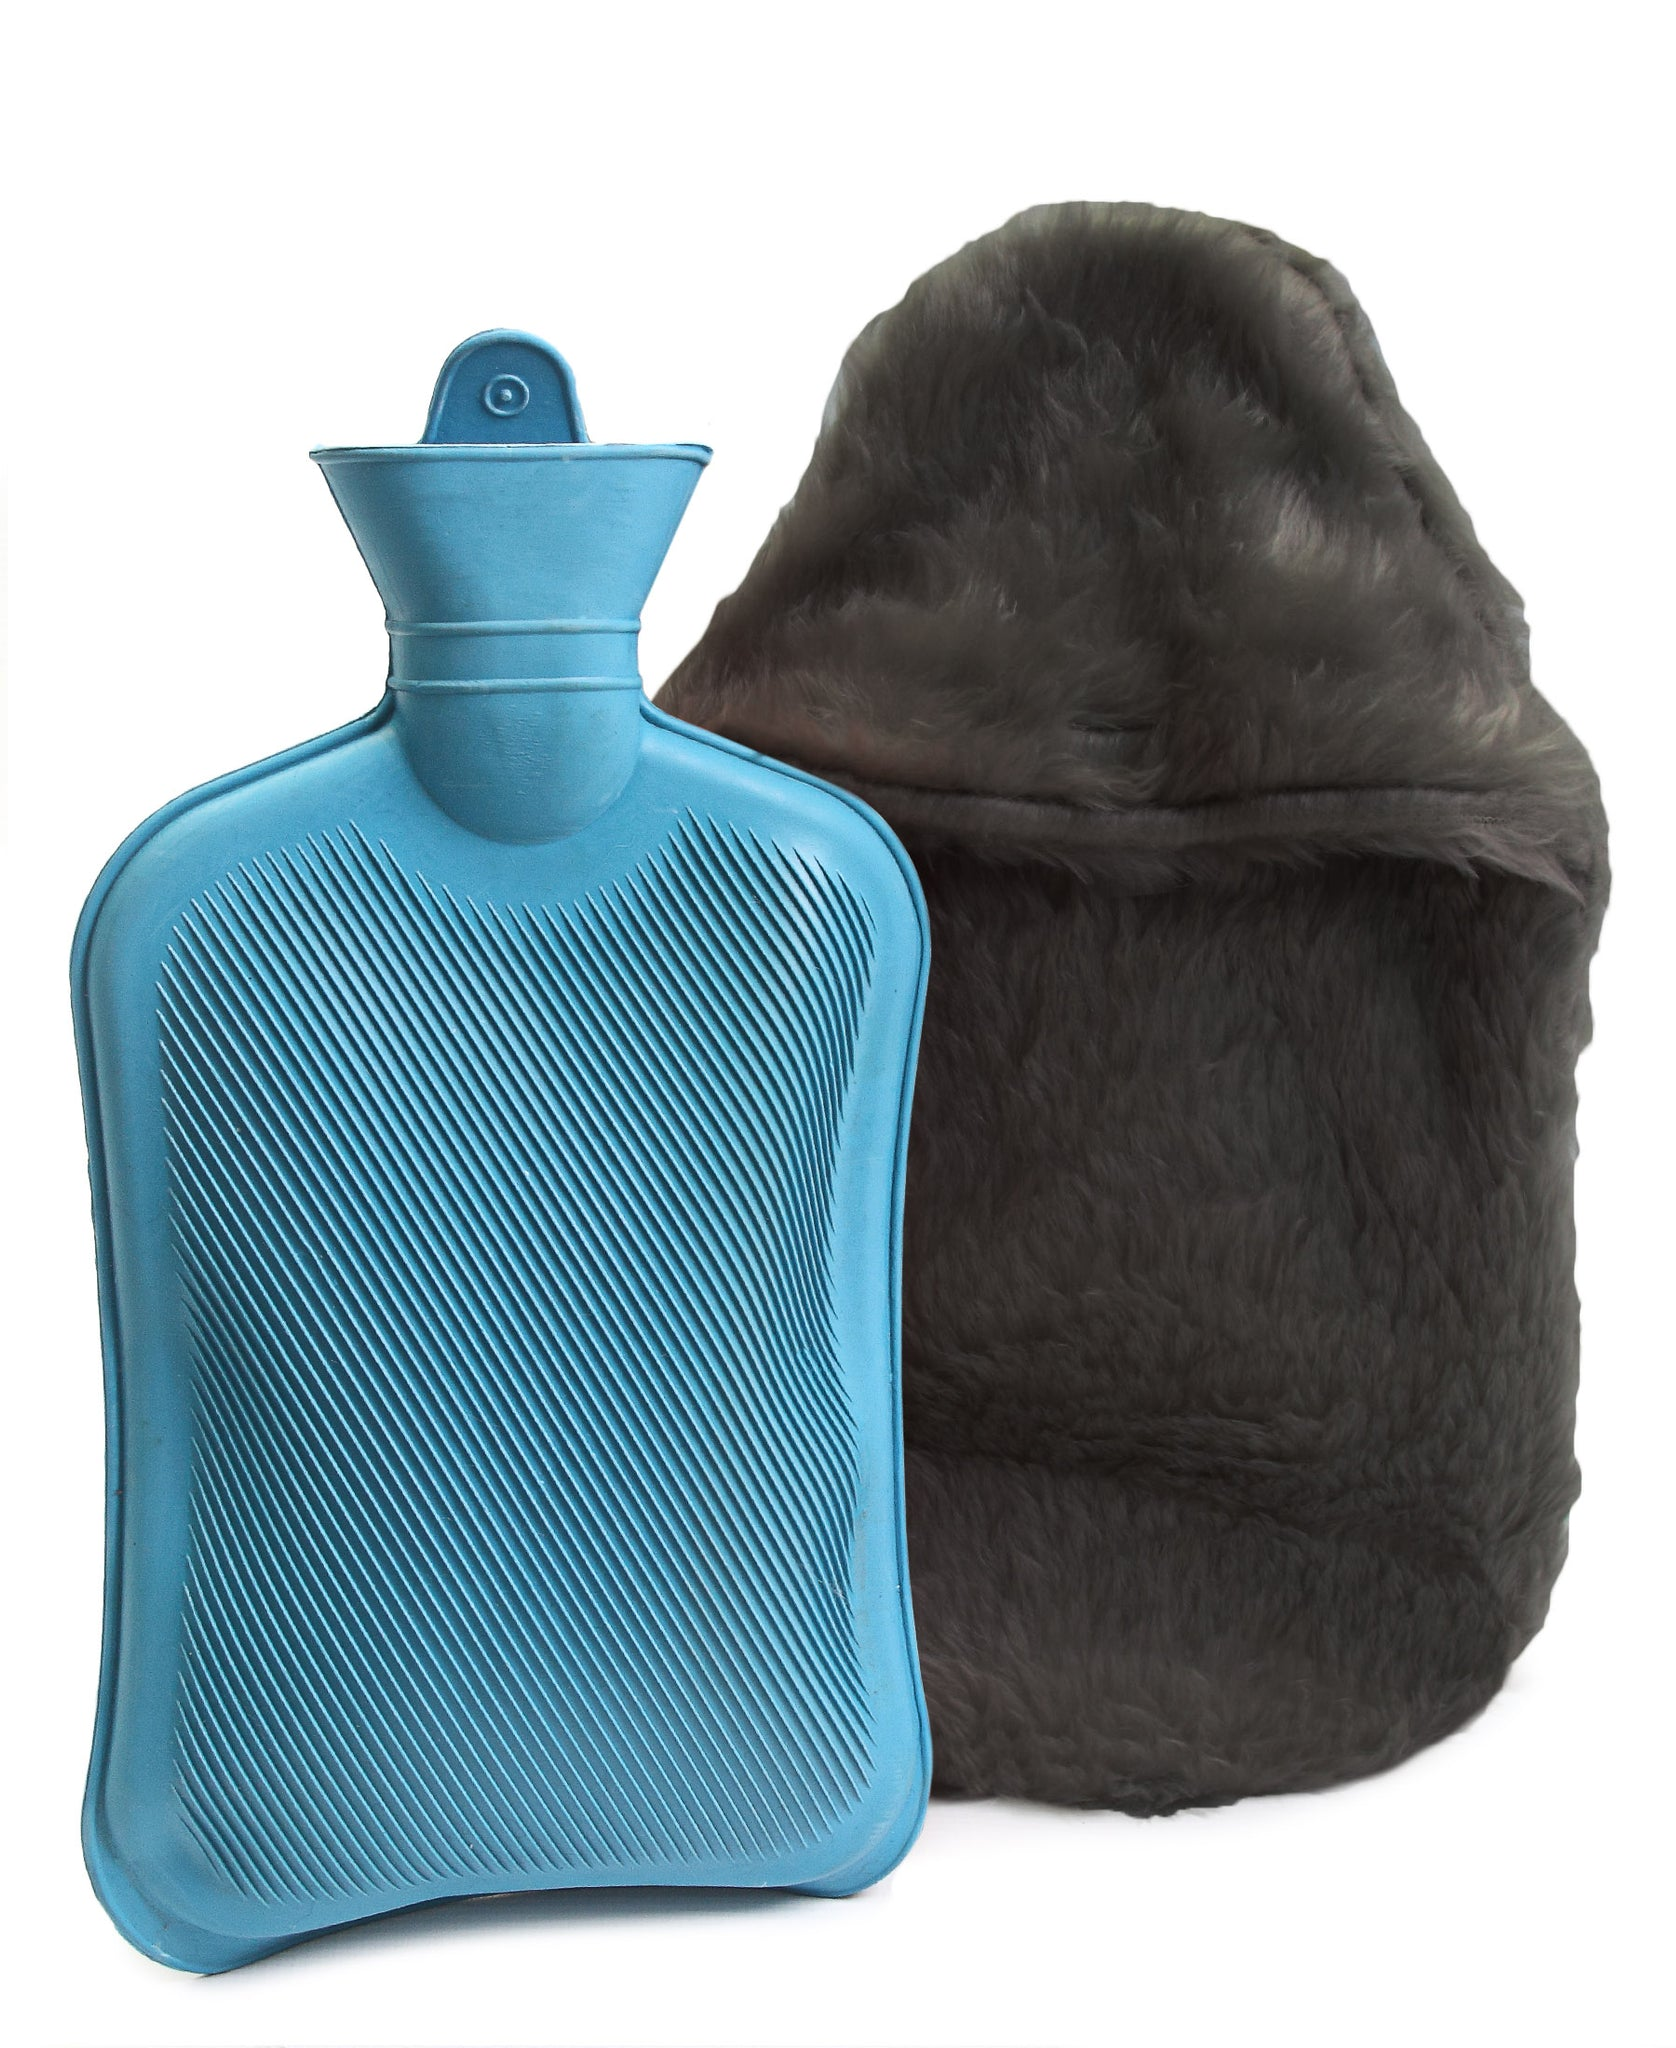 Hot Water Bottle With Cover - Grey